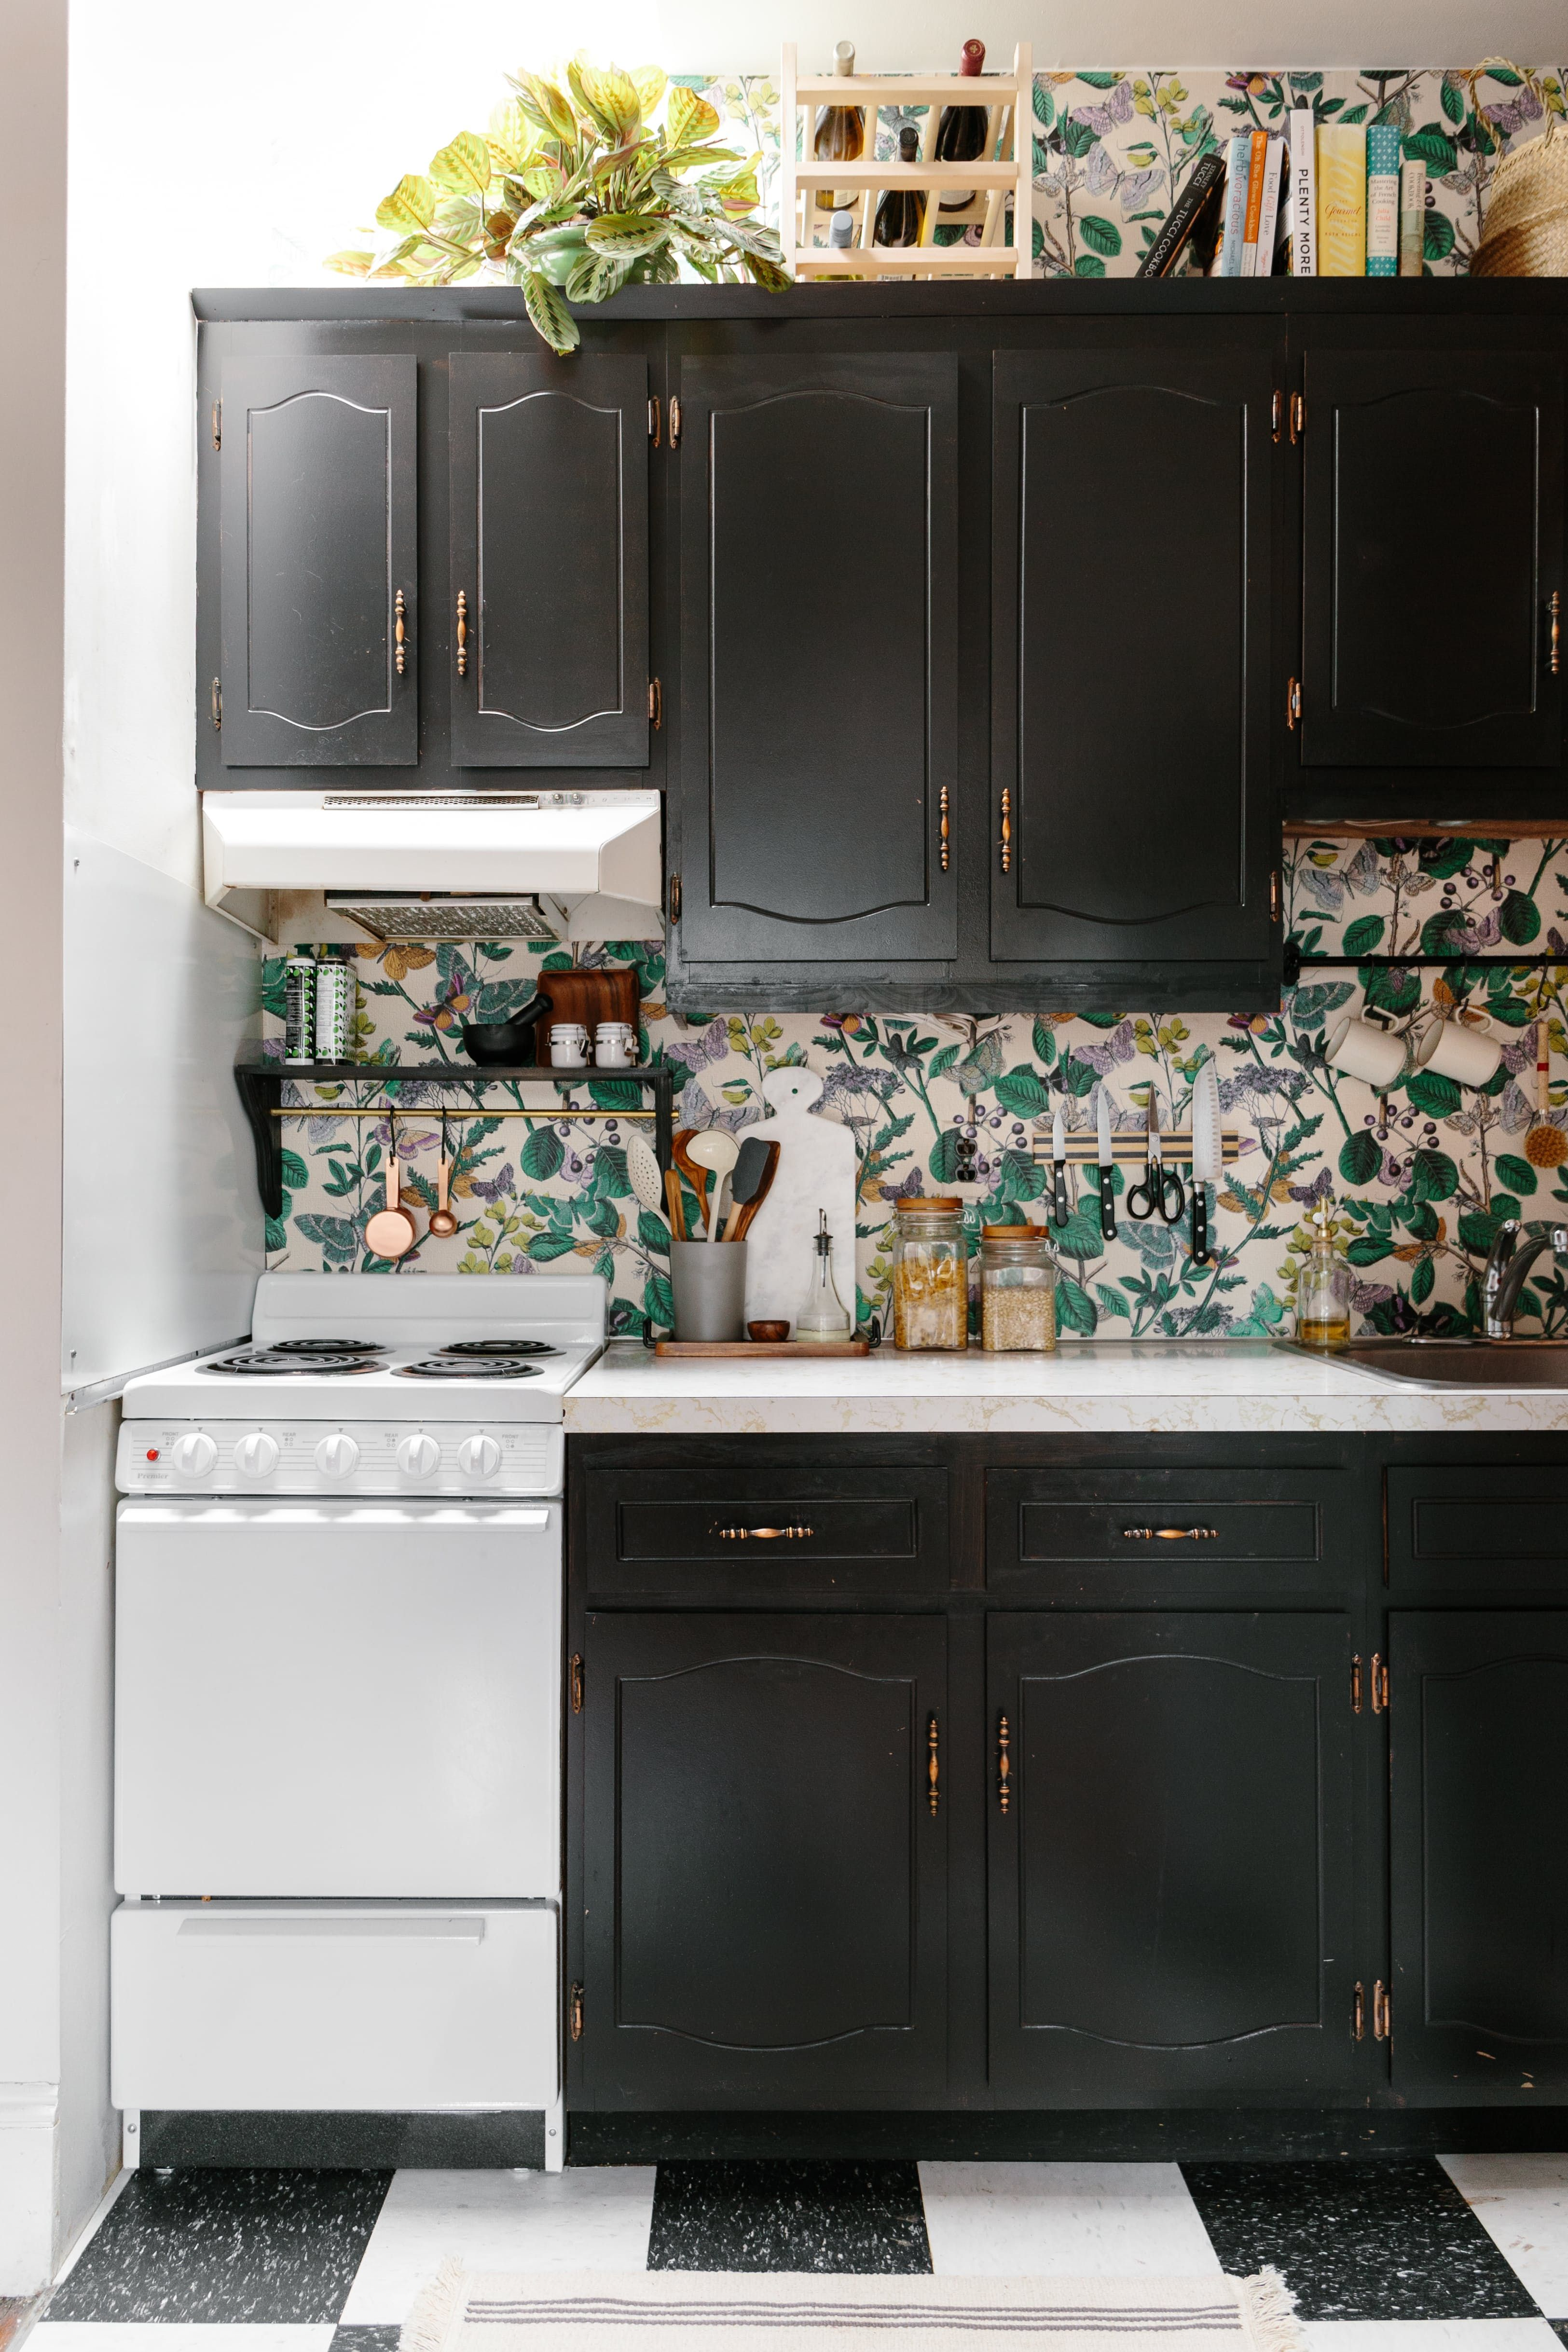 $300 Later, This Rental Kitchen Is No Longer Recognizable ...